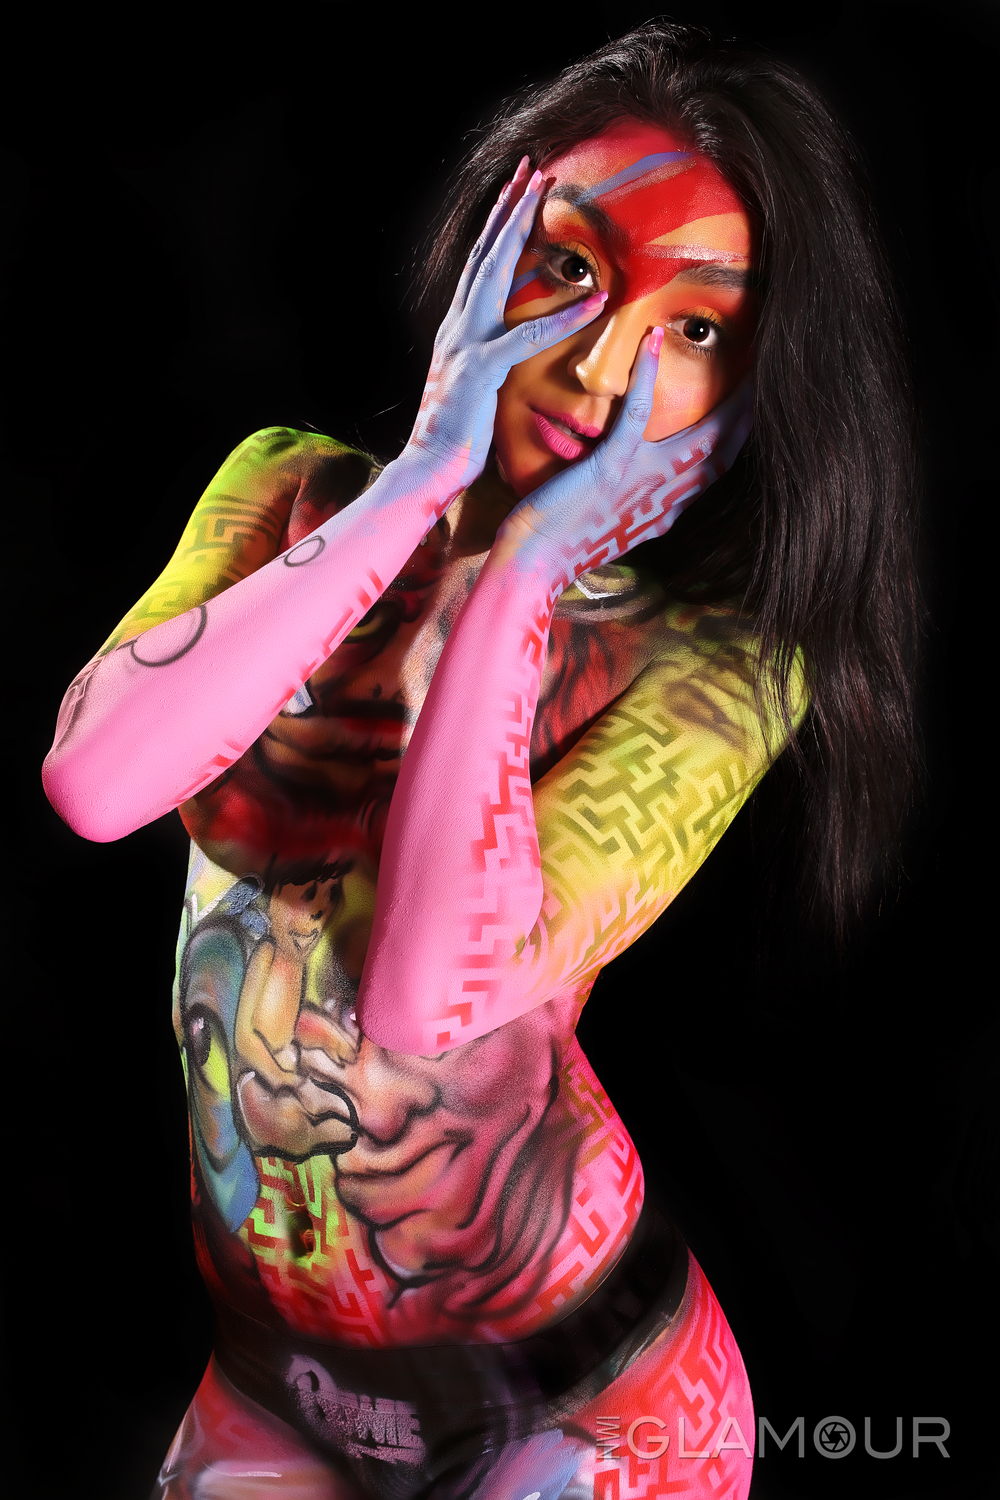 colorful girl painted david bowie style